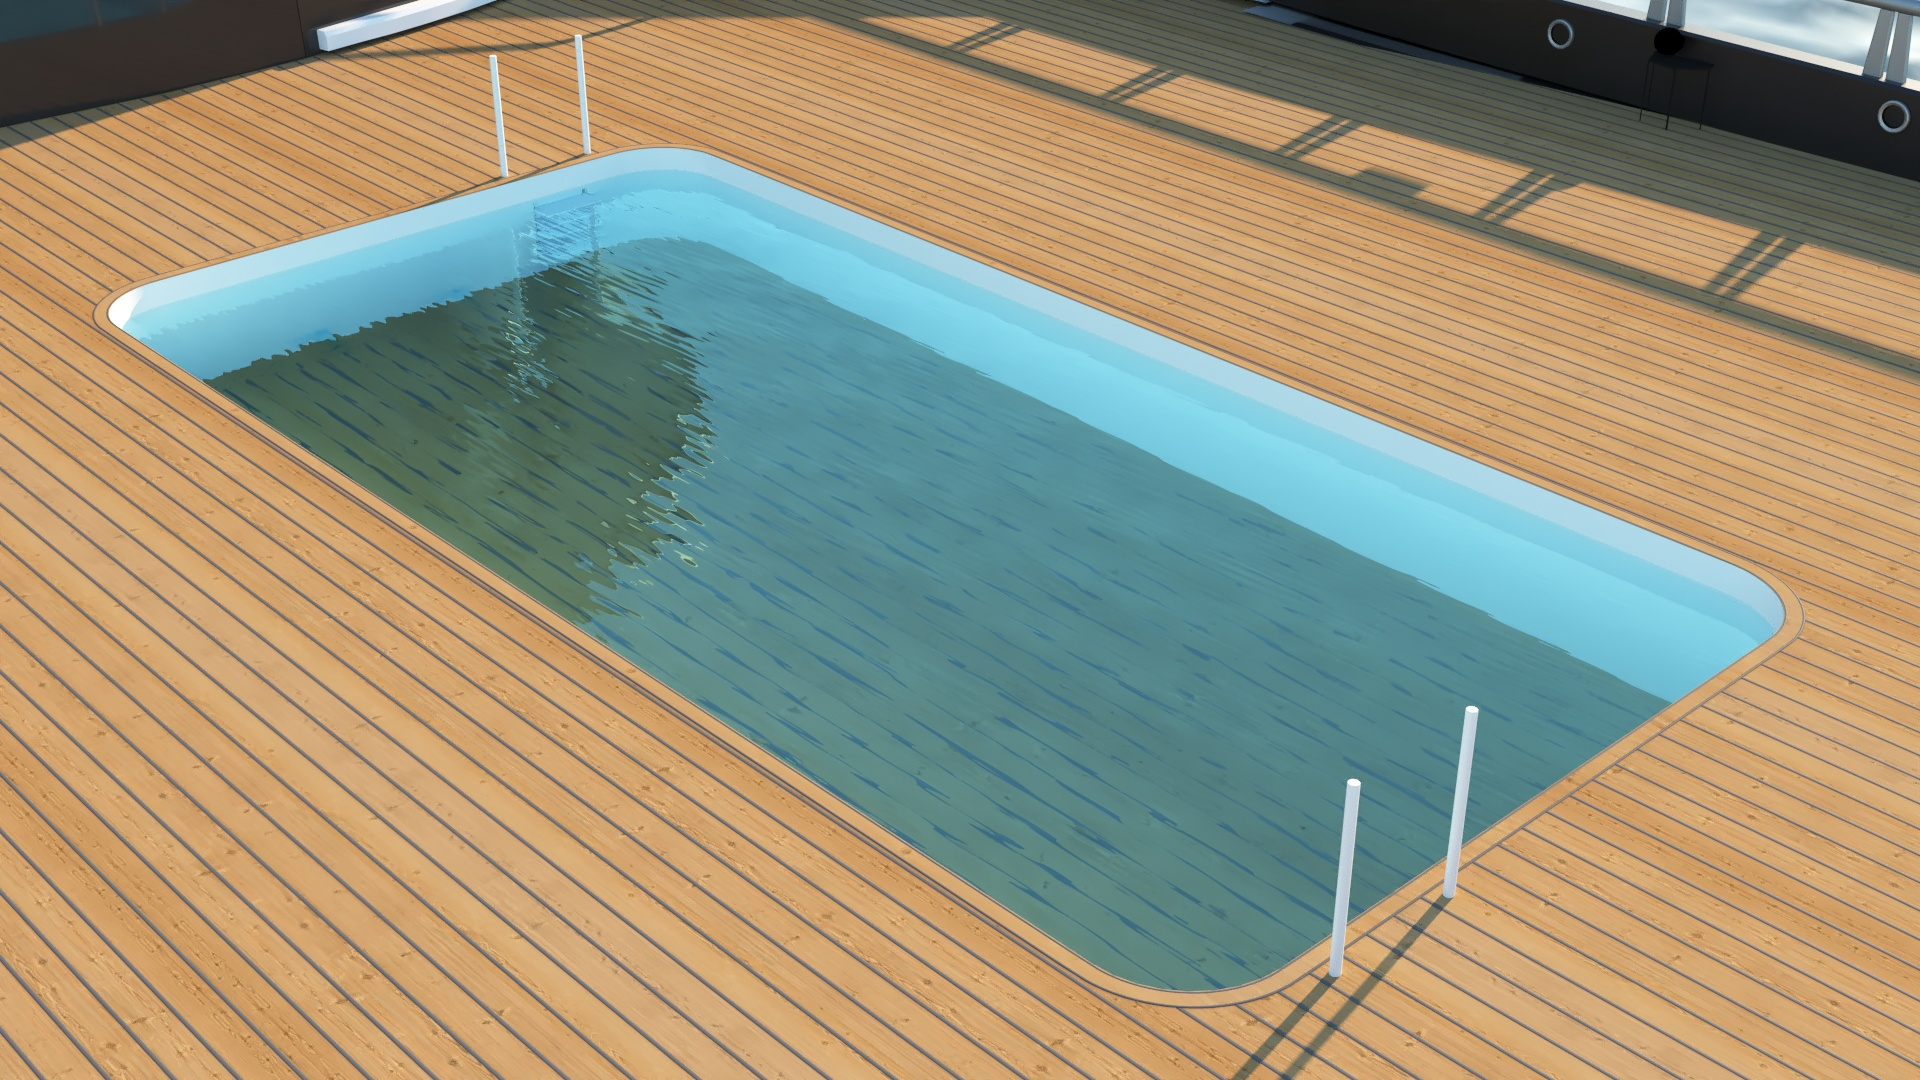 Large pools with sealing floors